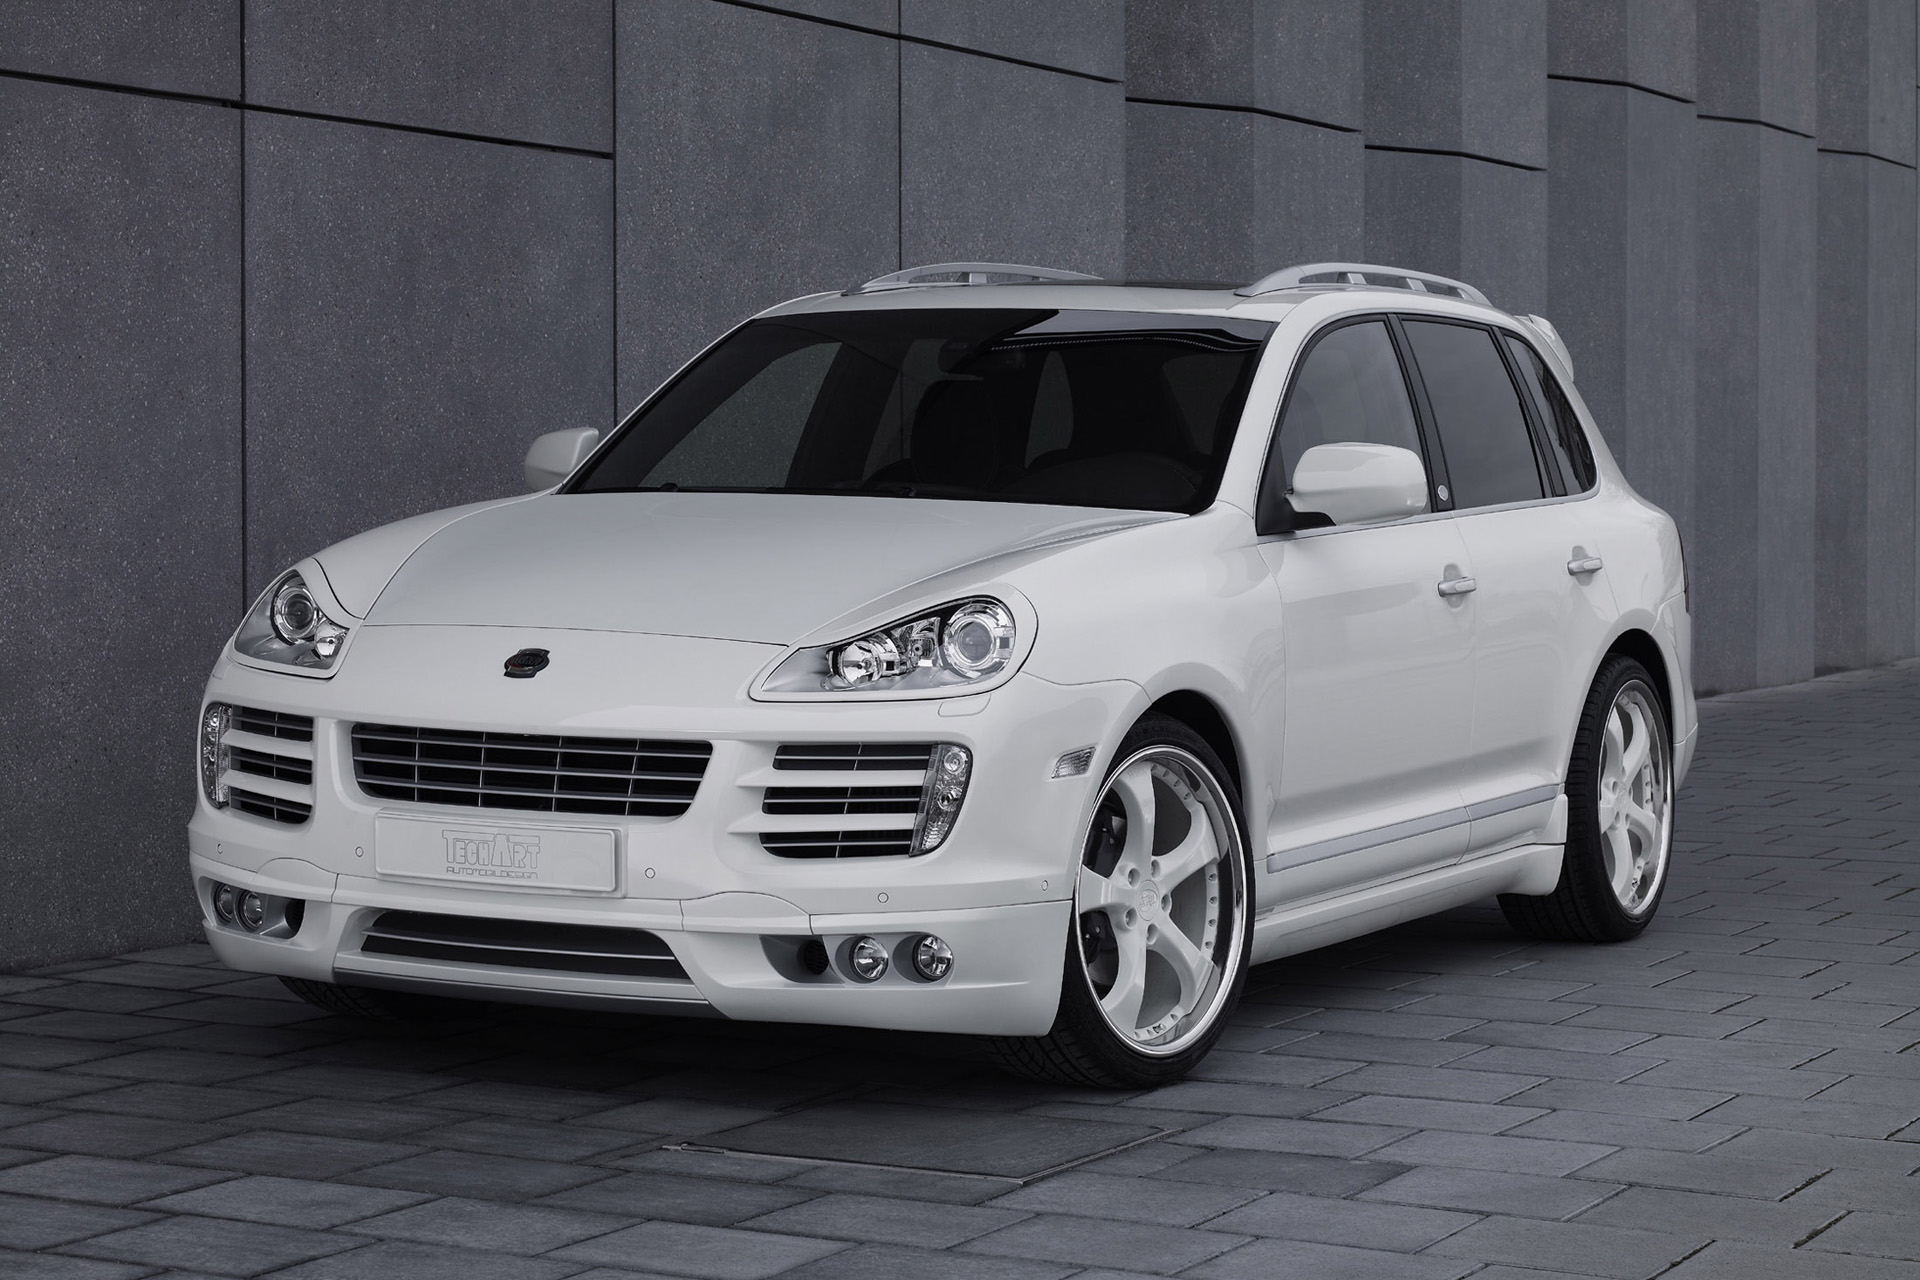 Techart Porsche Cayenne Diesel photo 66859